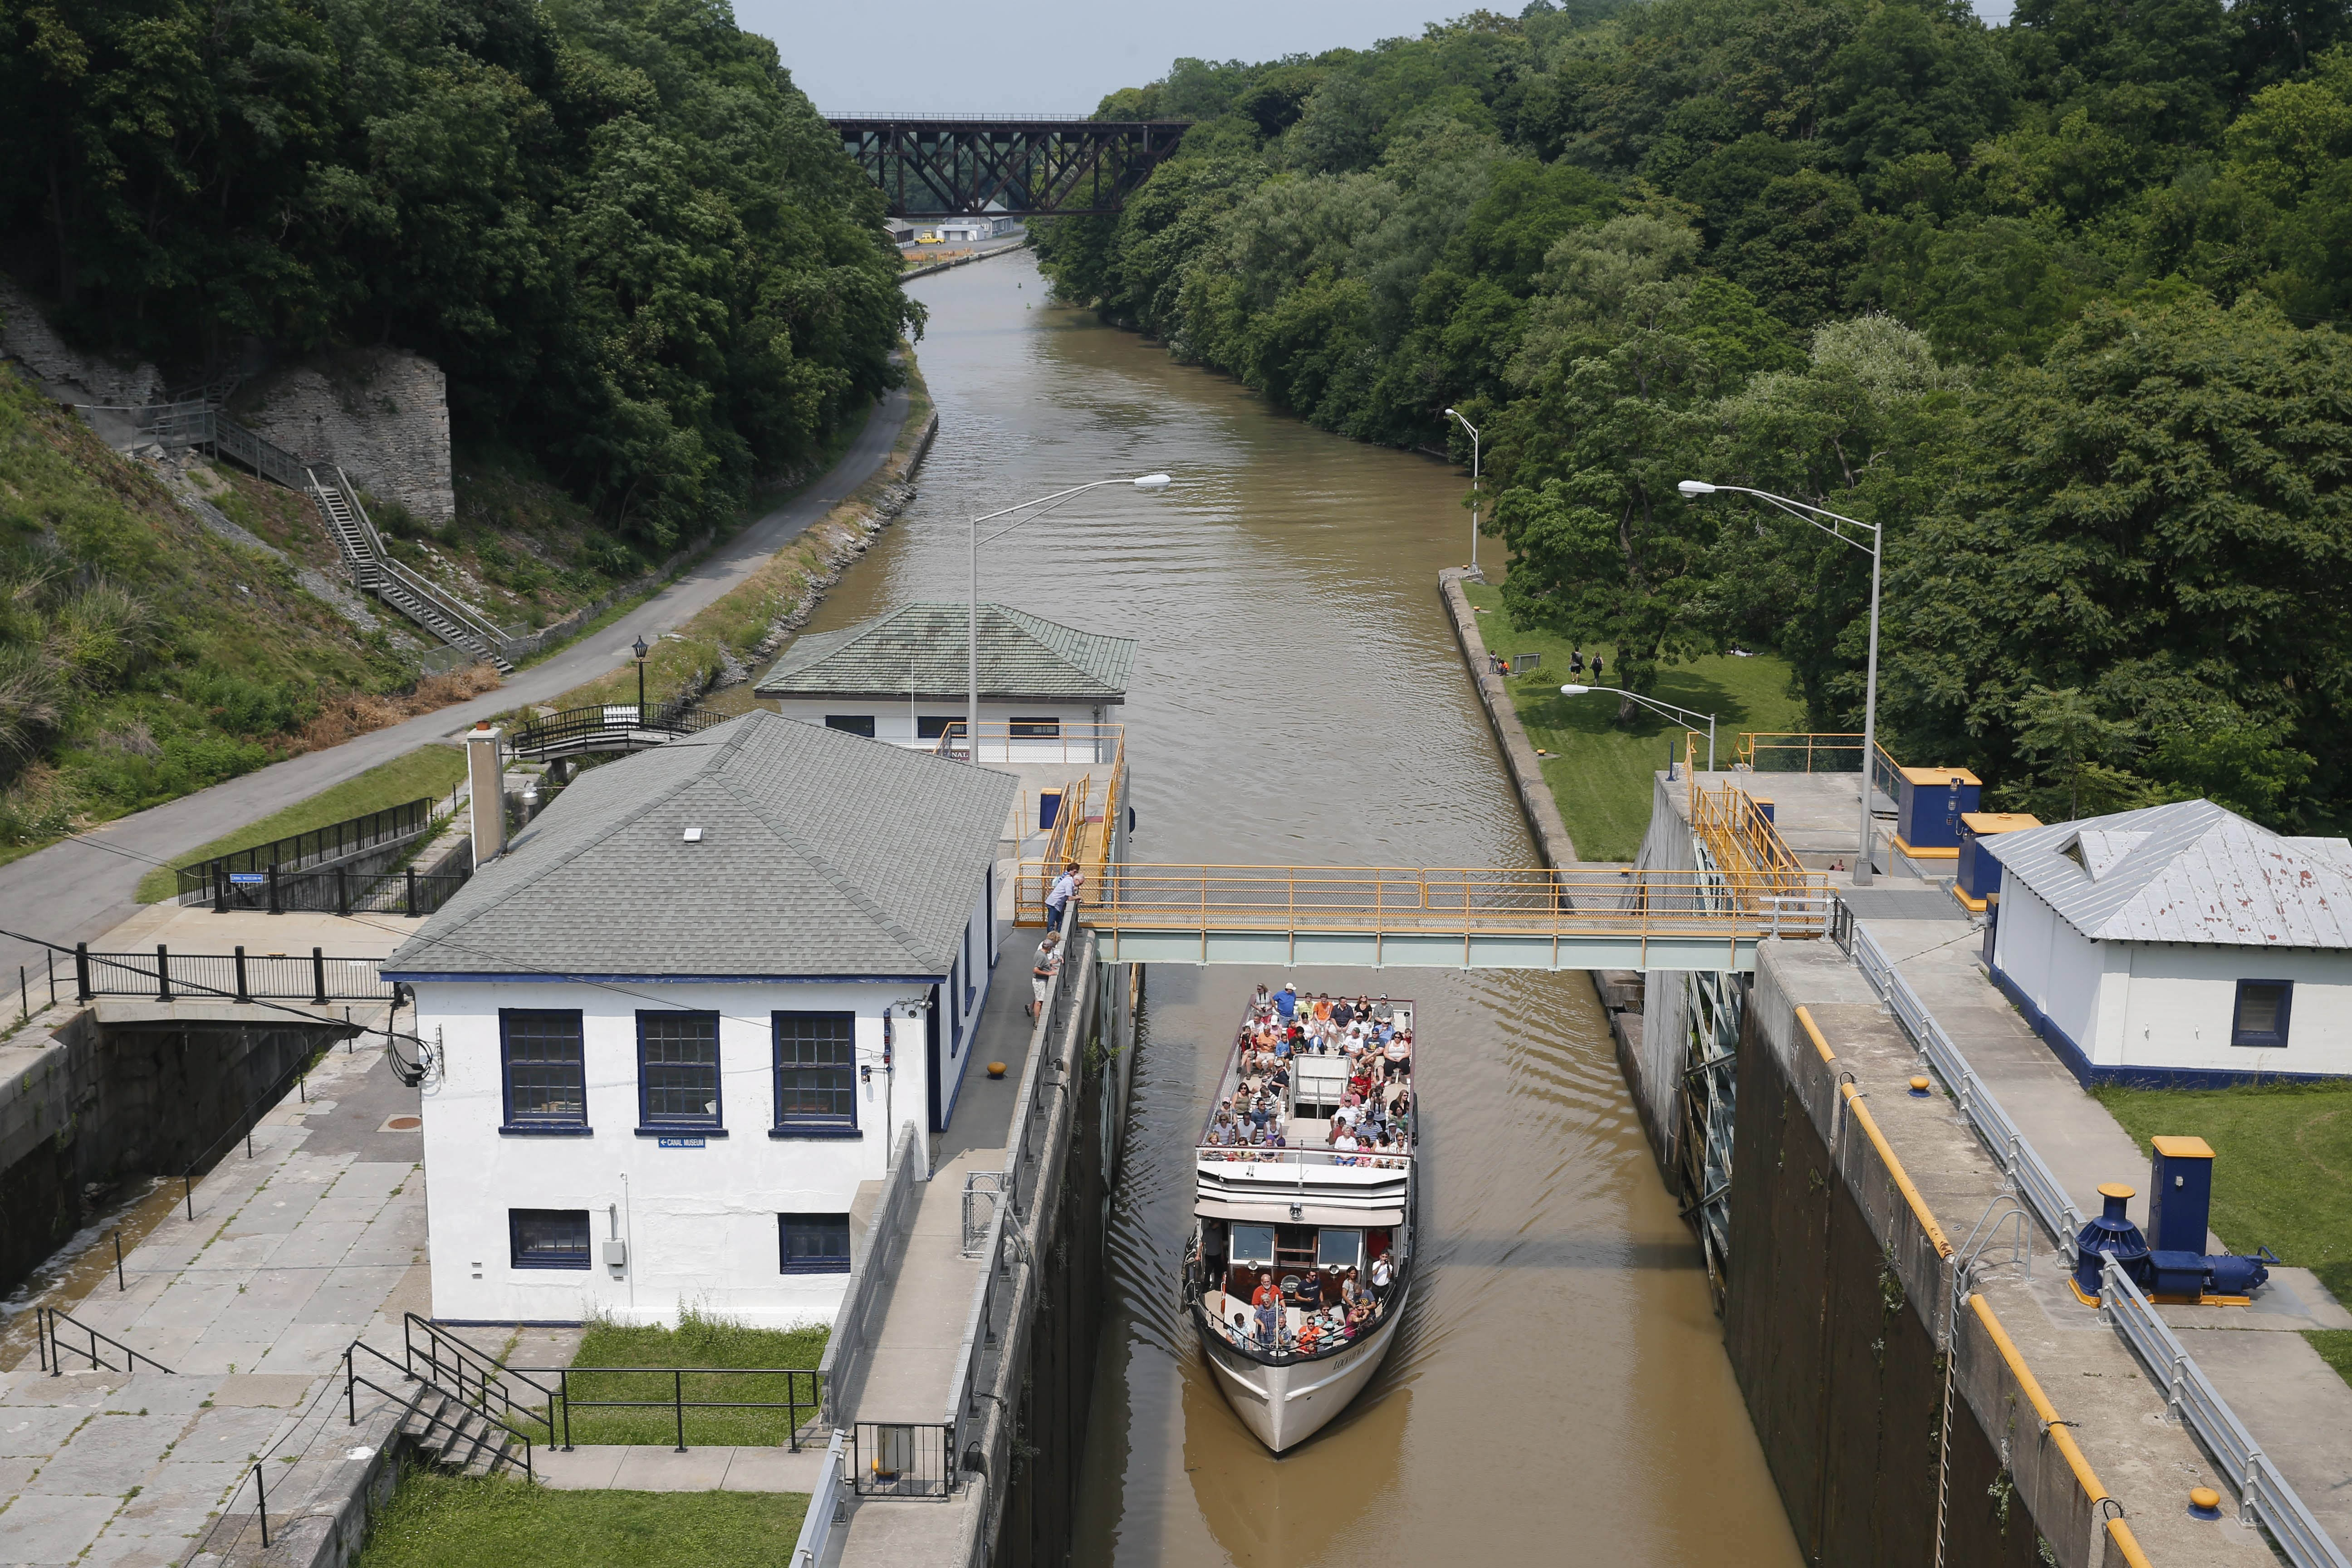 A tour boat, Lockview V, enters a lock while taking tourists up the Erie Canal in Lockport. A tour boat operator called Hydraulic Race Co. plans to open the first zip line attraction over the canal on May 1, 2017.